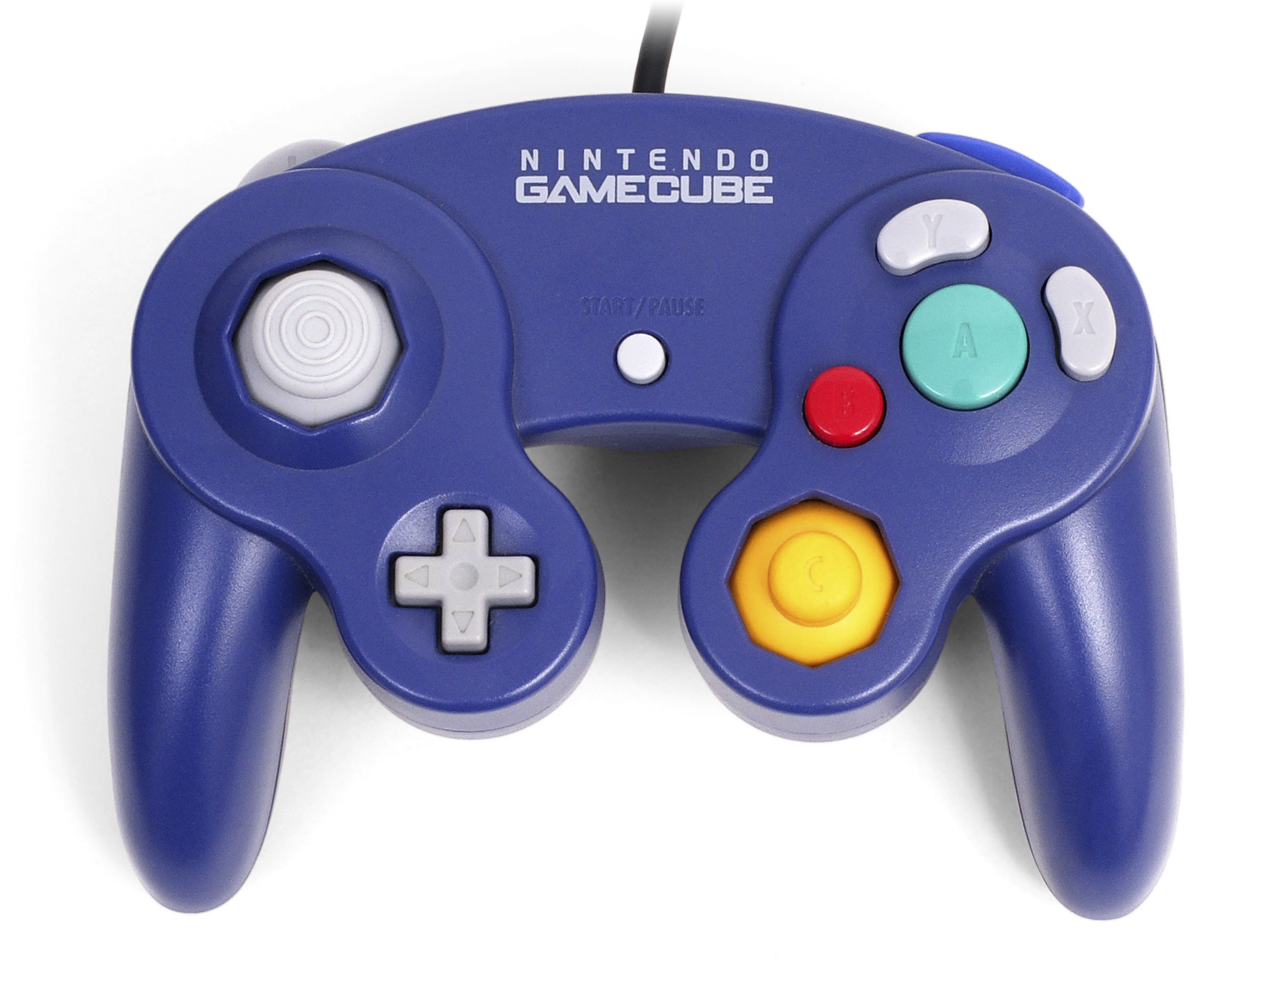 File:GameCube controller.png - Wikimedia Commons